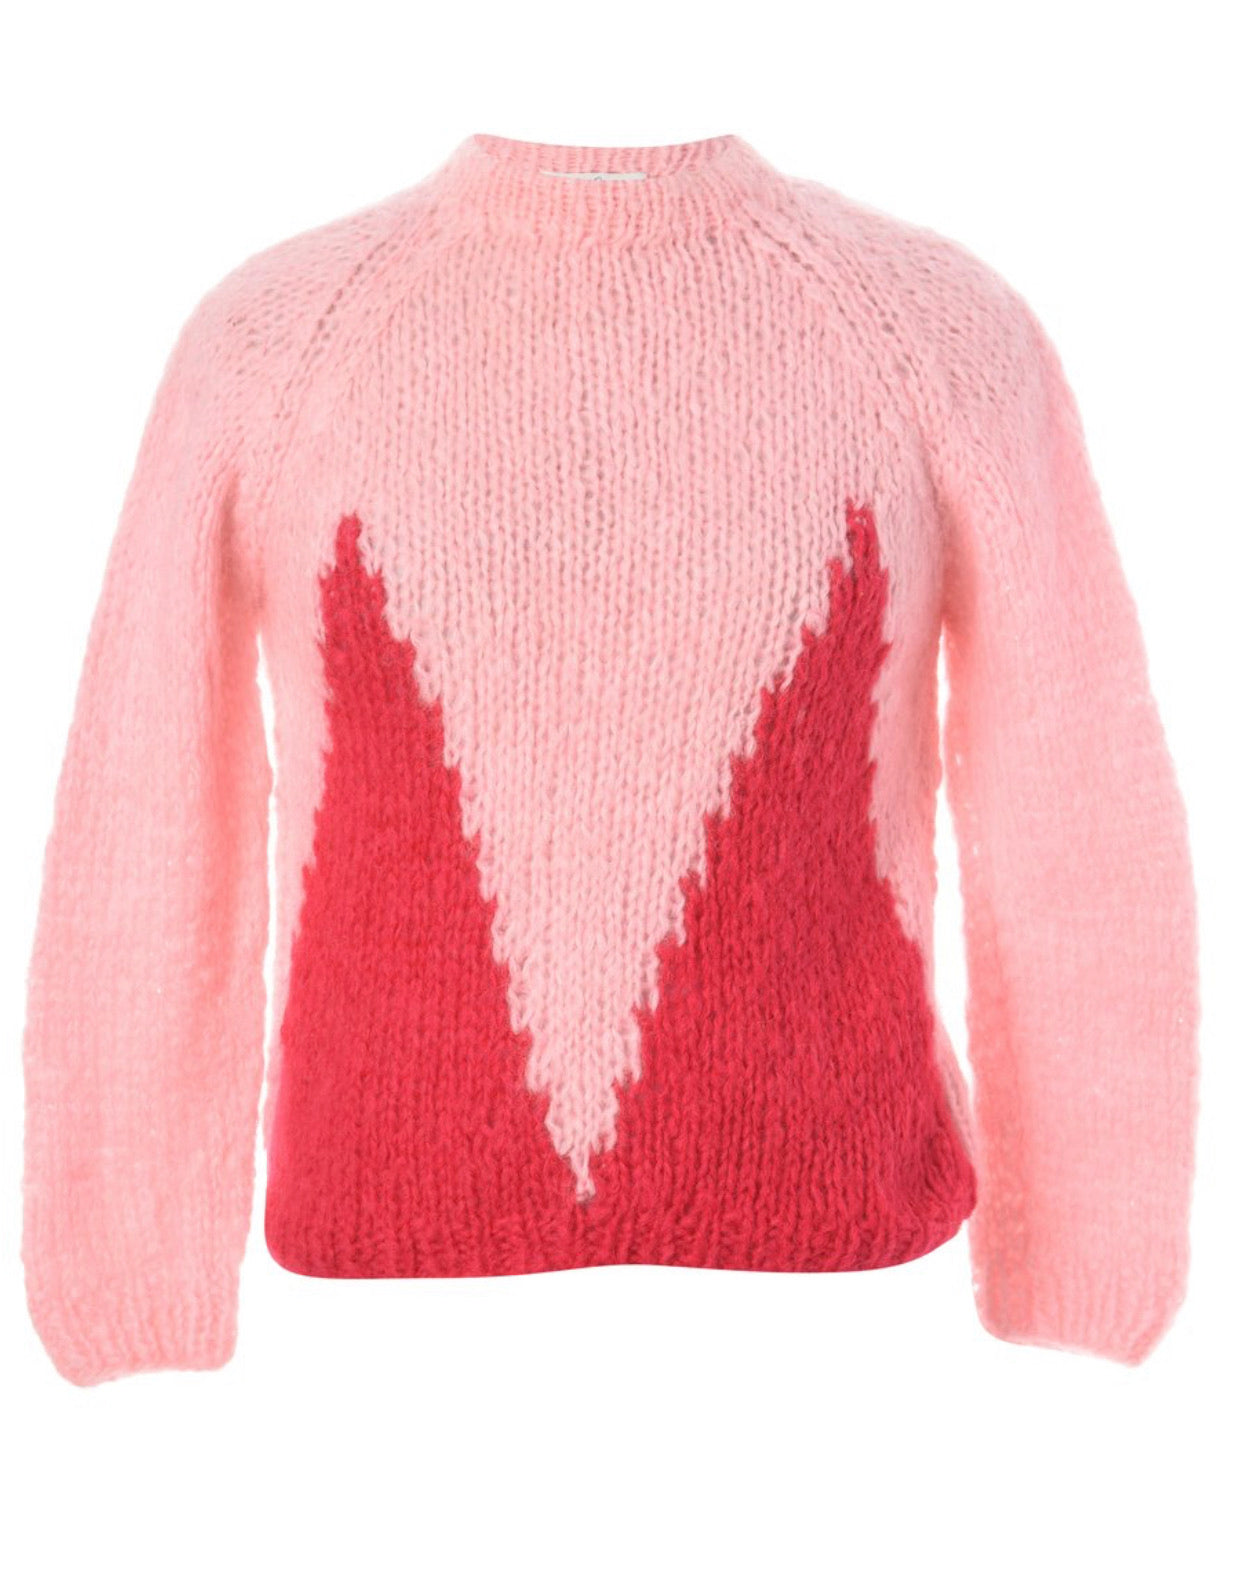 The Camelia mohair Jumper